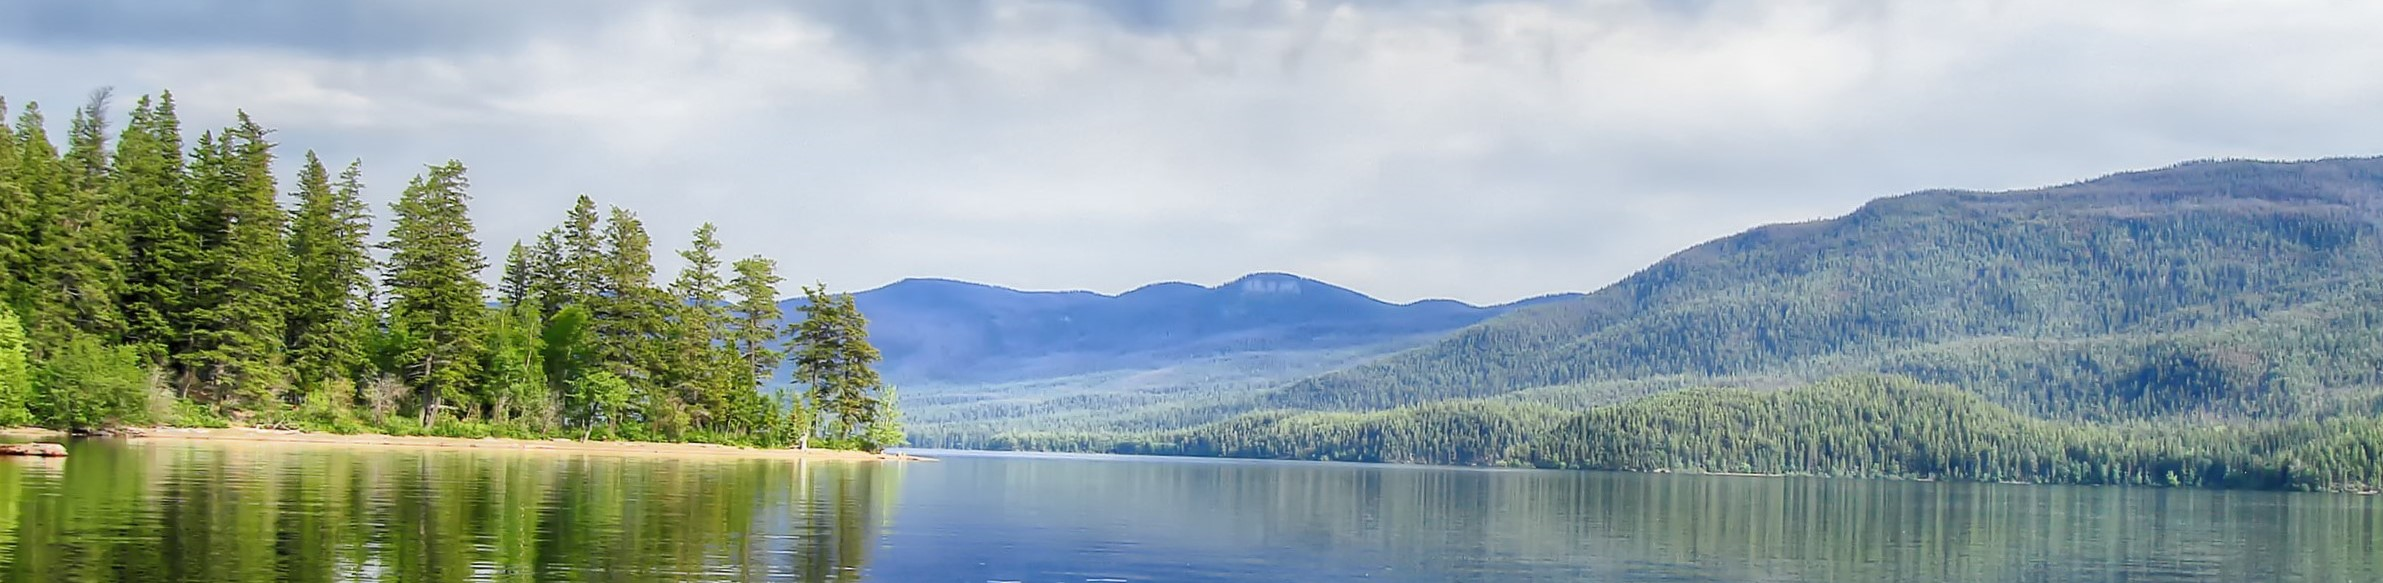 View of Francois Lake and surrounding mountains, in Northern British Columbia.